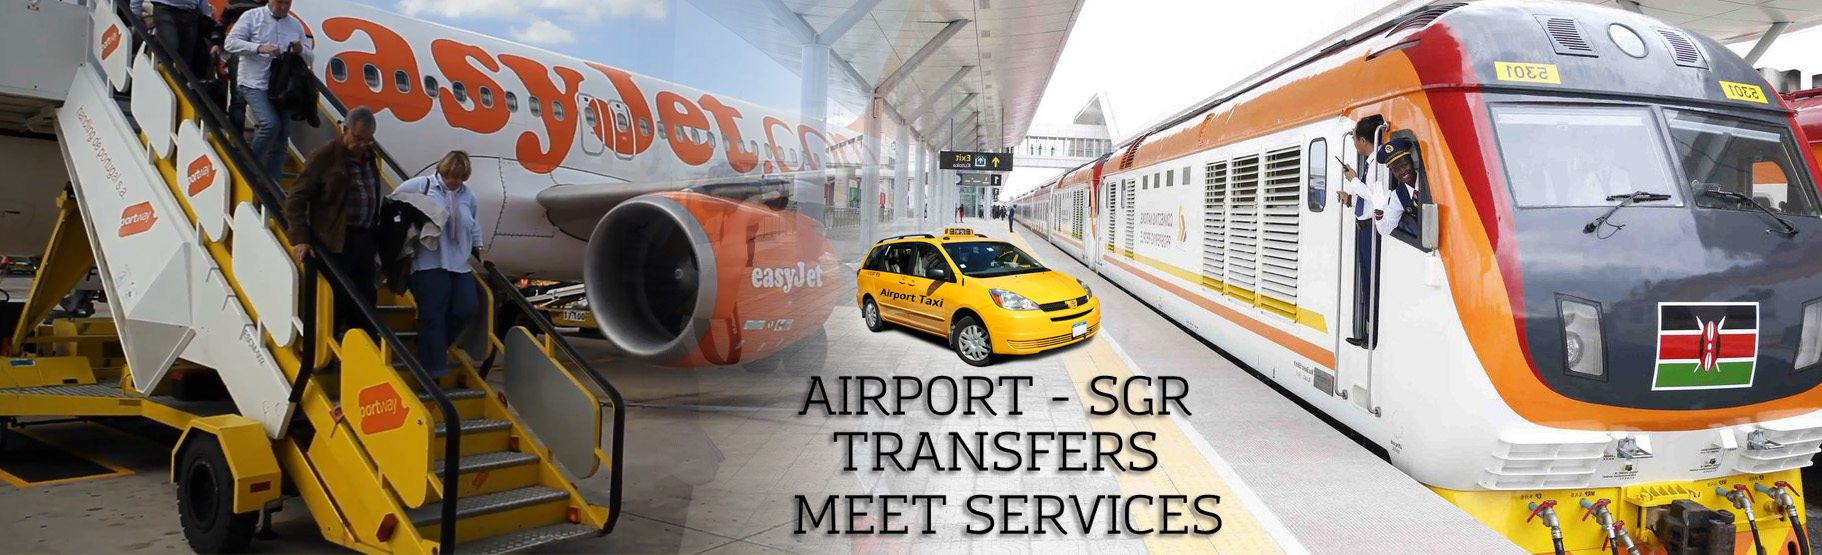 Almasi Adventure Airport ,SGR transfers in Kenya